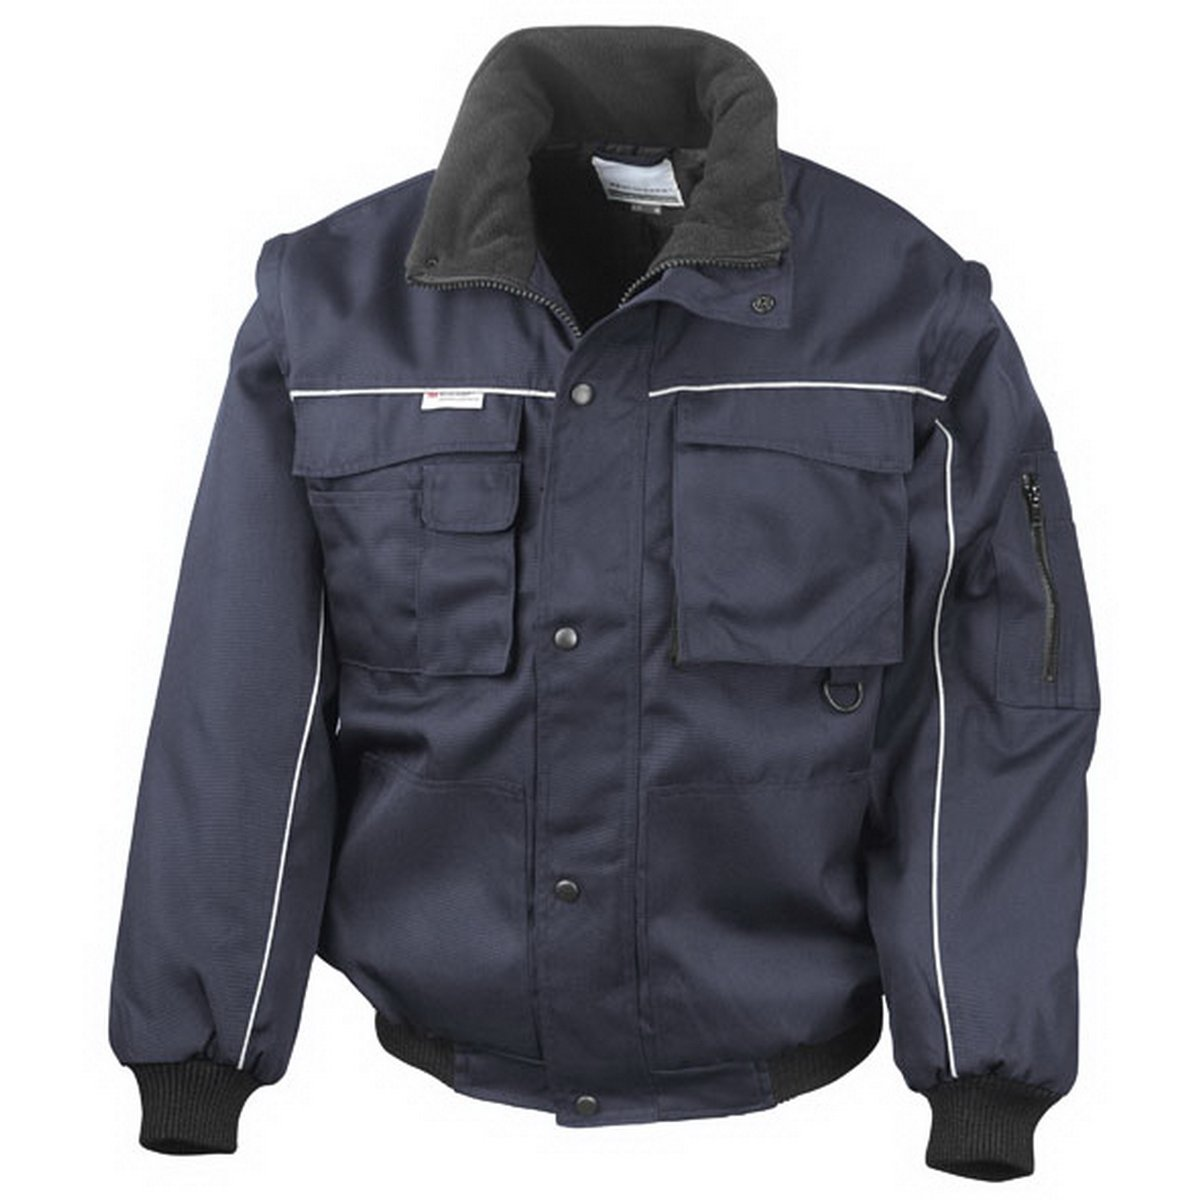 Funny Pilots Jacket by Result (Colour: Navy Blue/Navy/Blue) (Jacket Size: M)